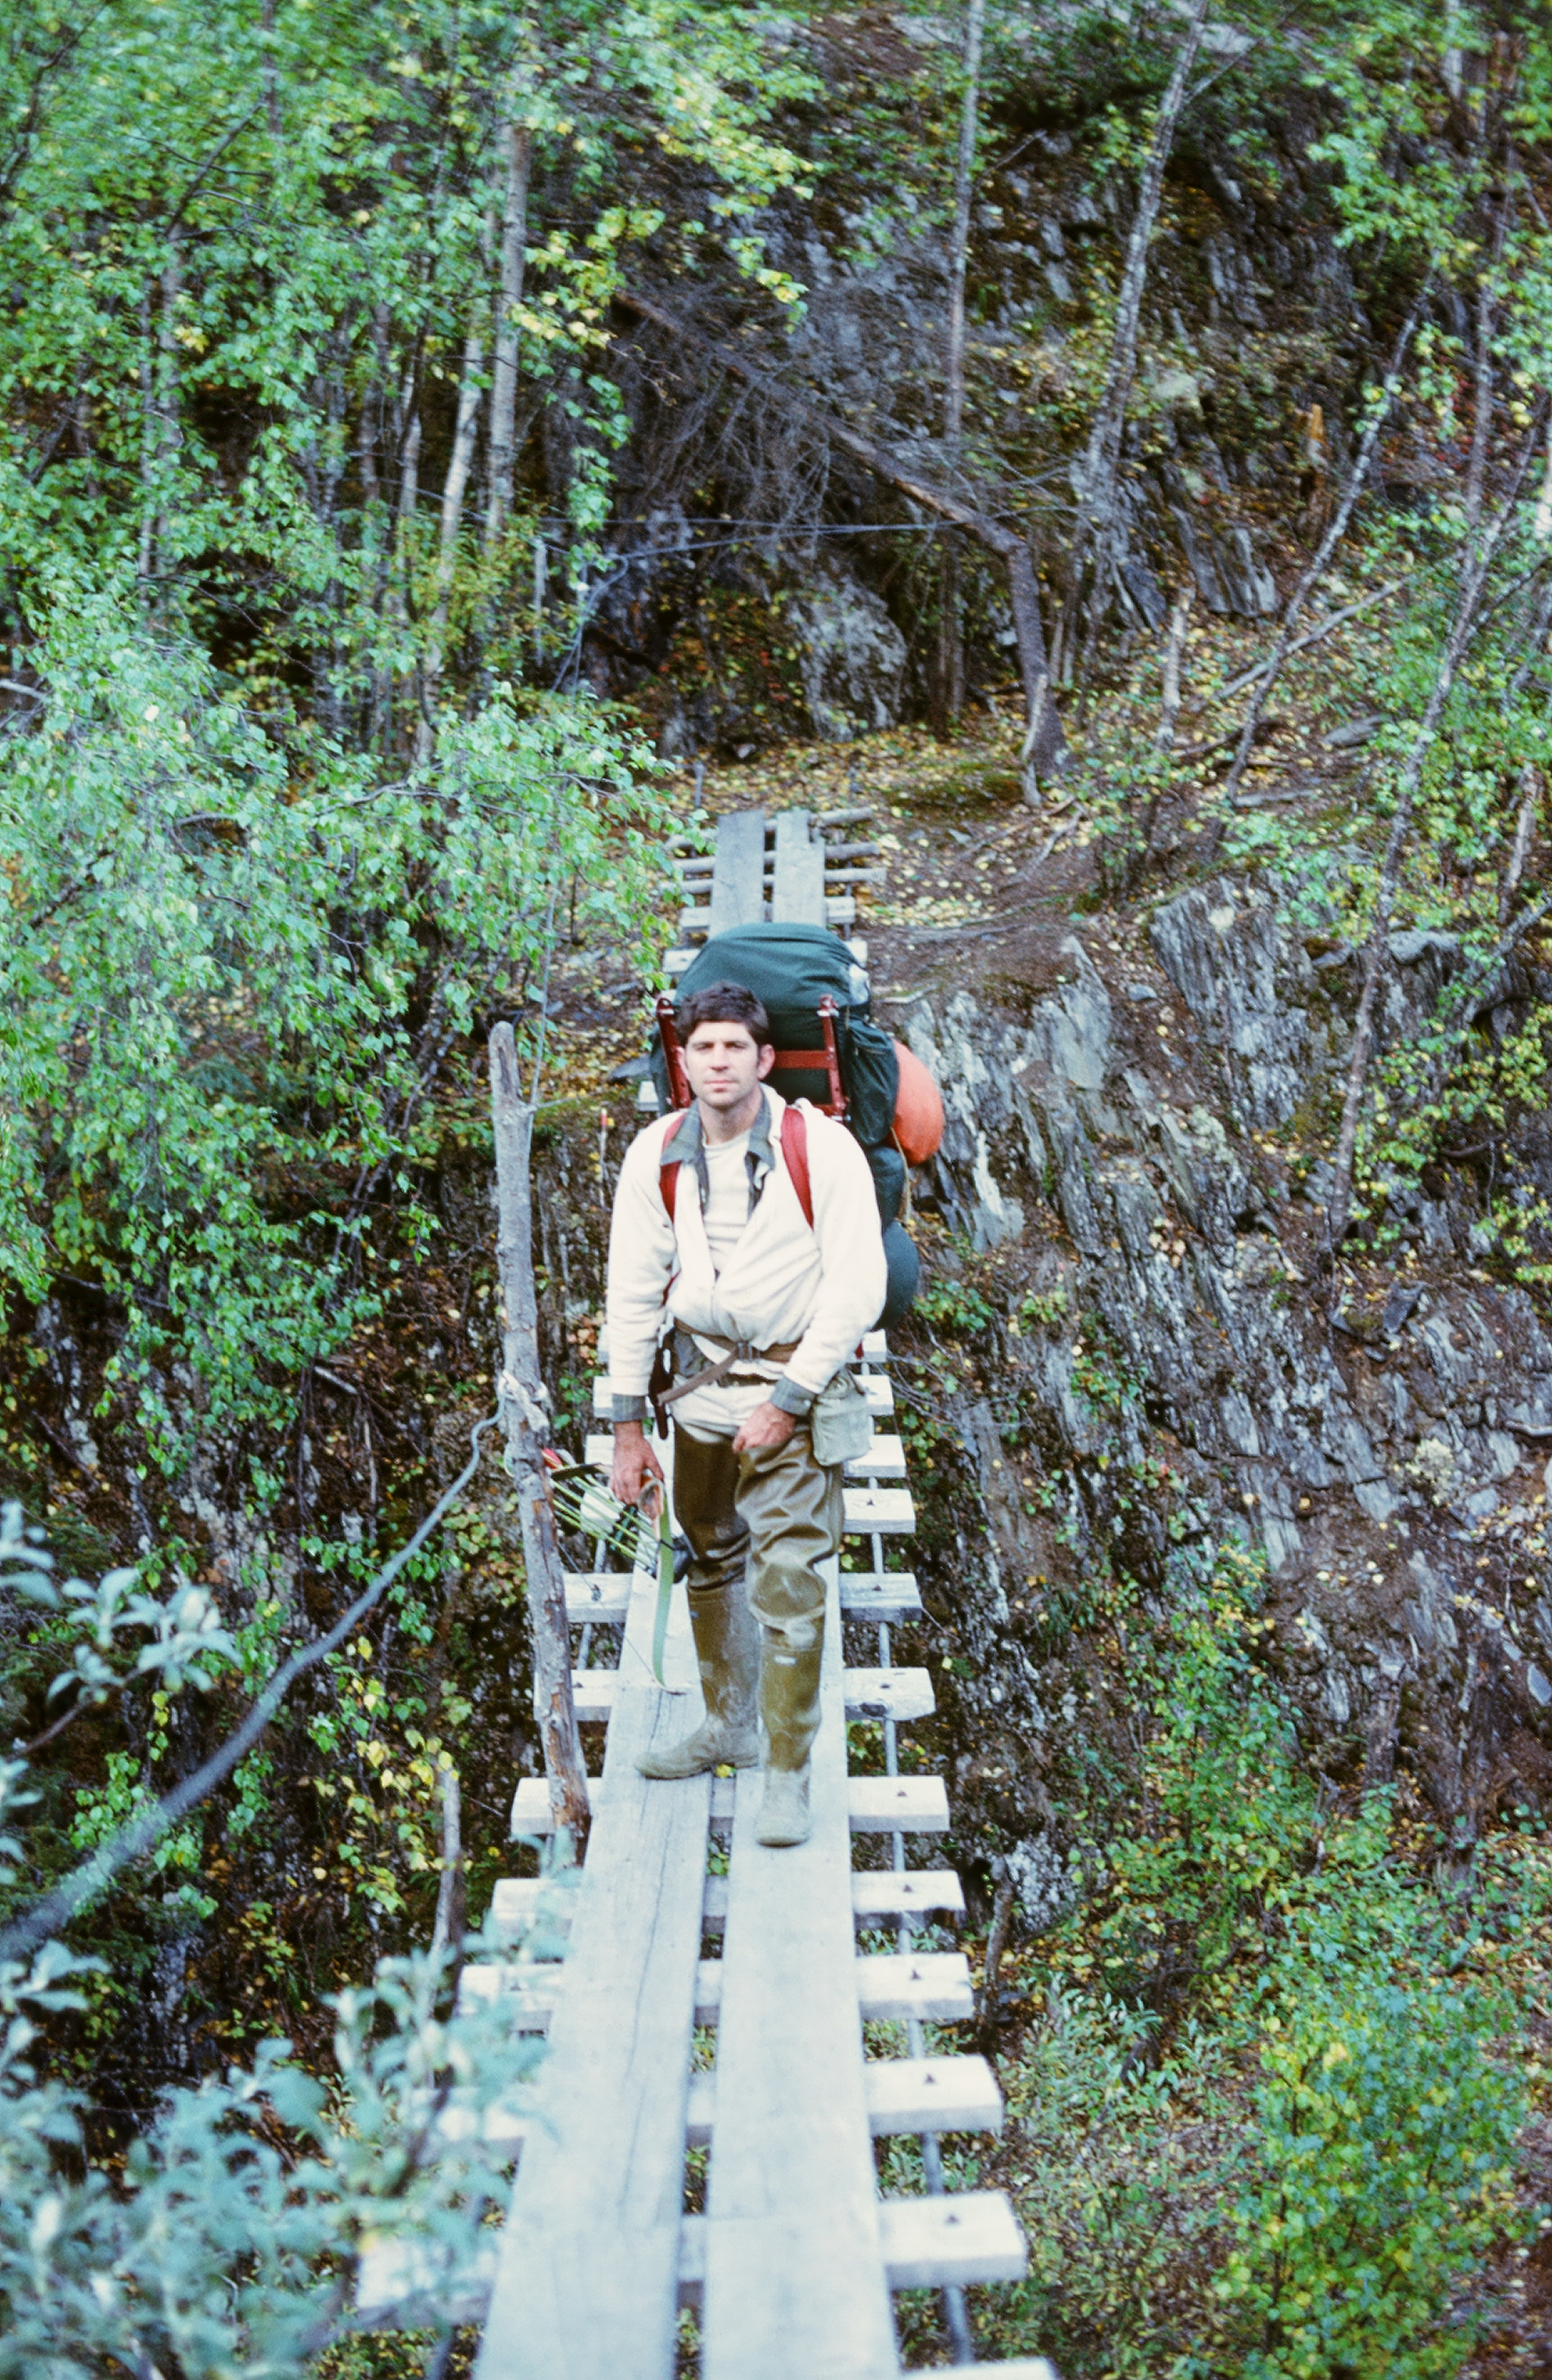 Me on the swinging bridge on a hunt in the early to mid 70's. One of the top cables is gone.